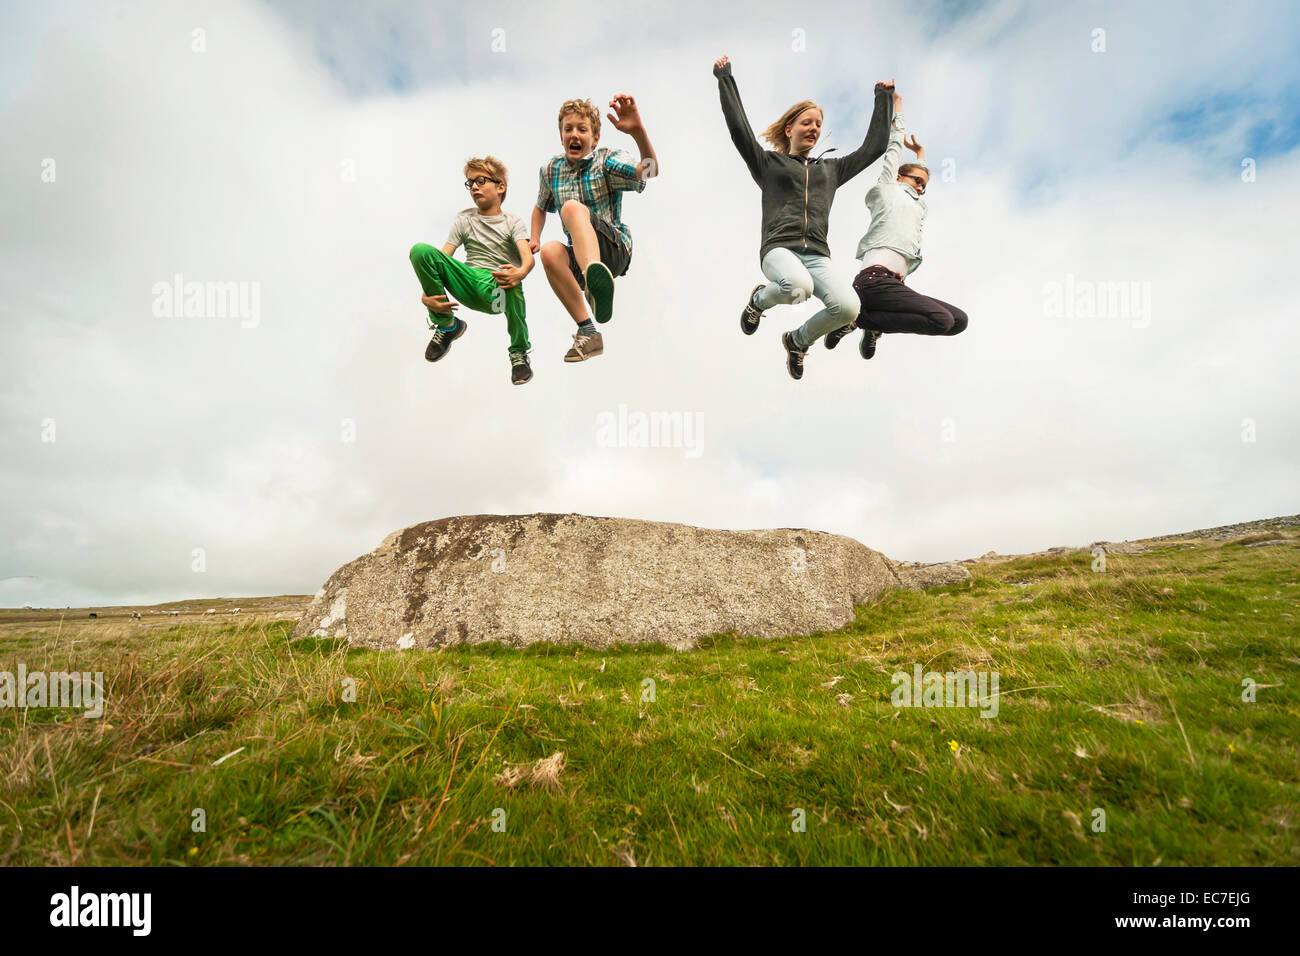 United Kingdom, England, Cornwall, Children jumping from stone - Stock Image